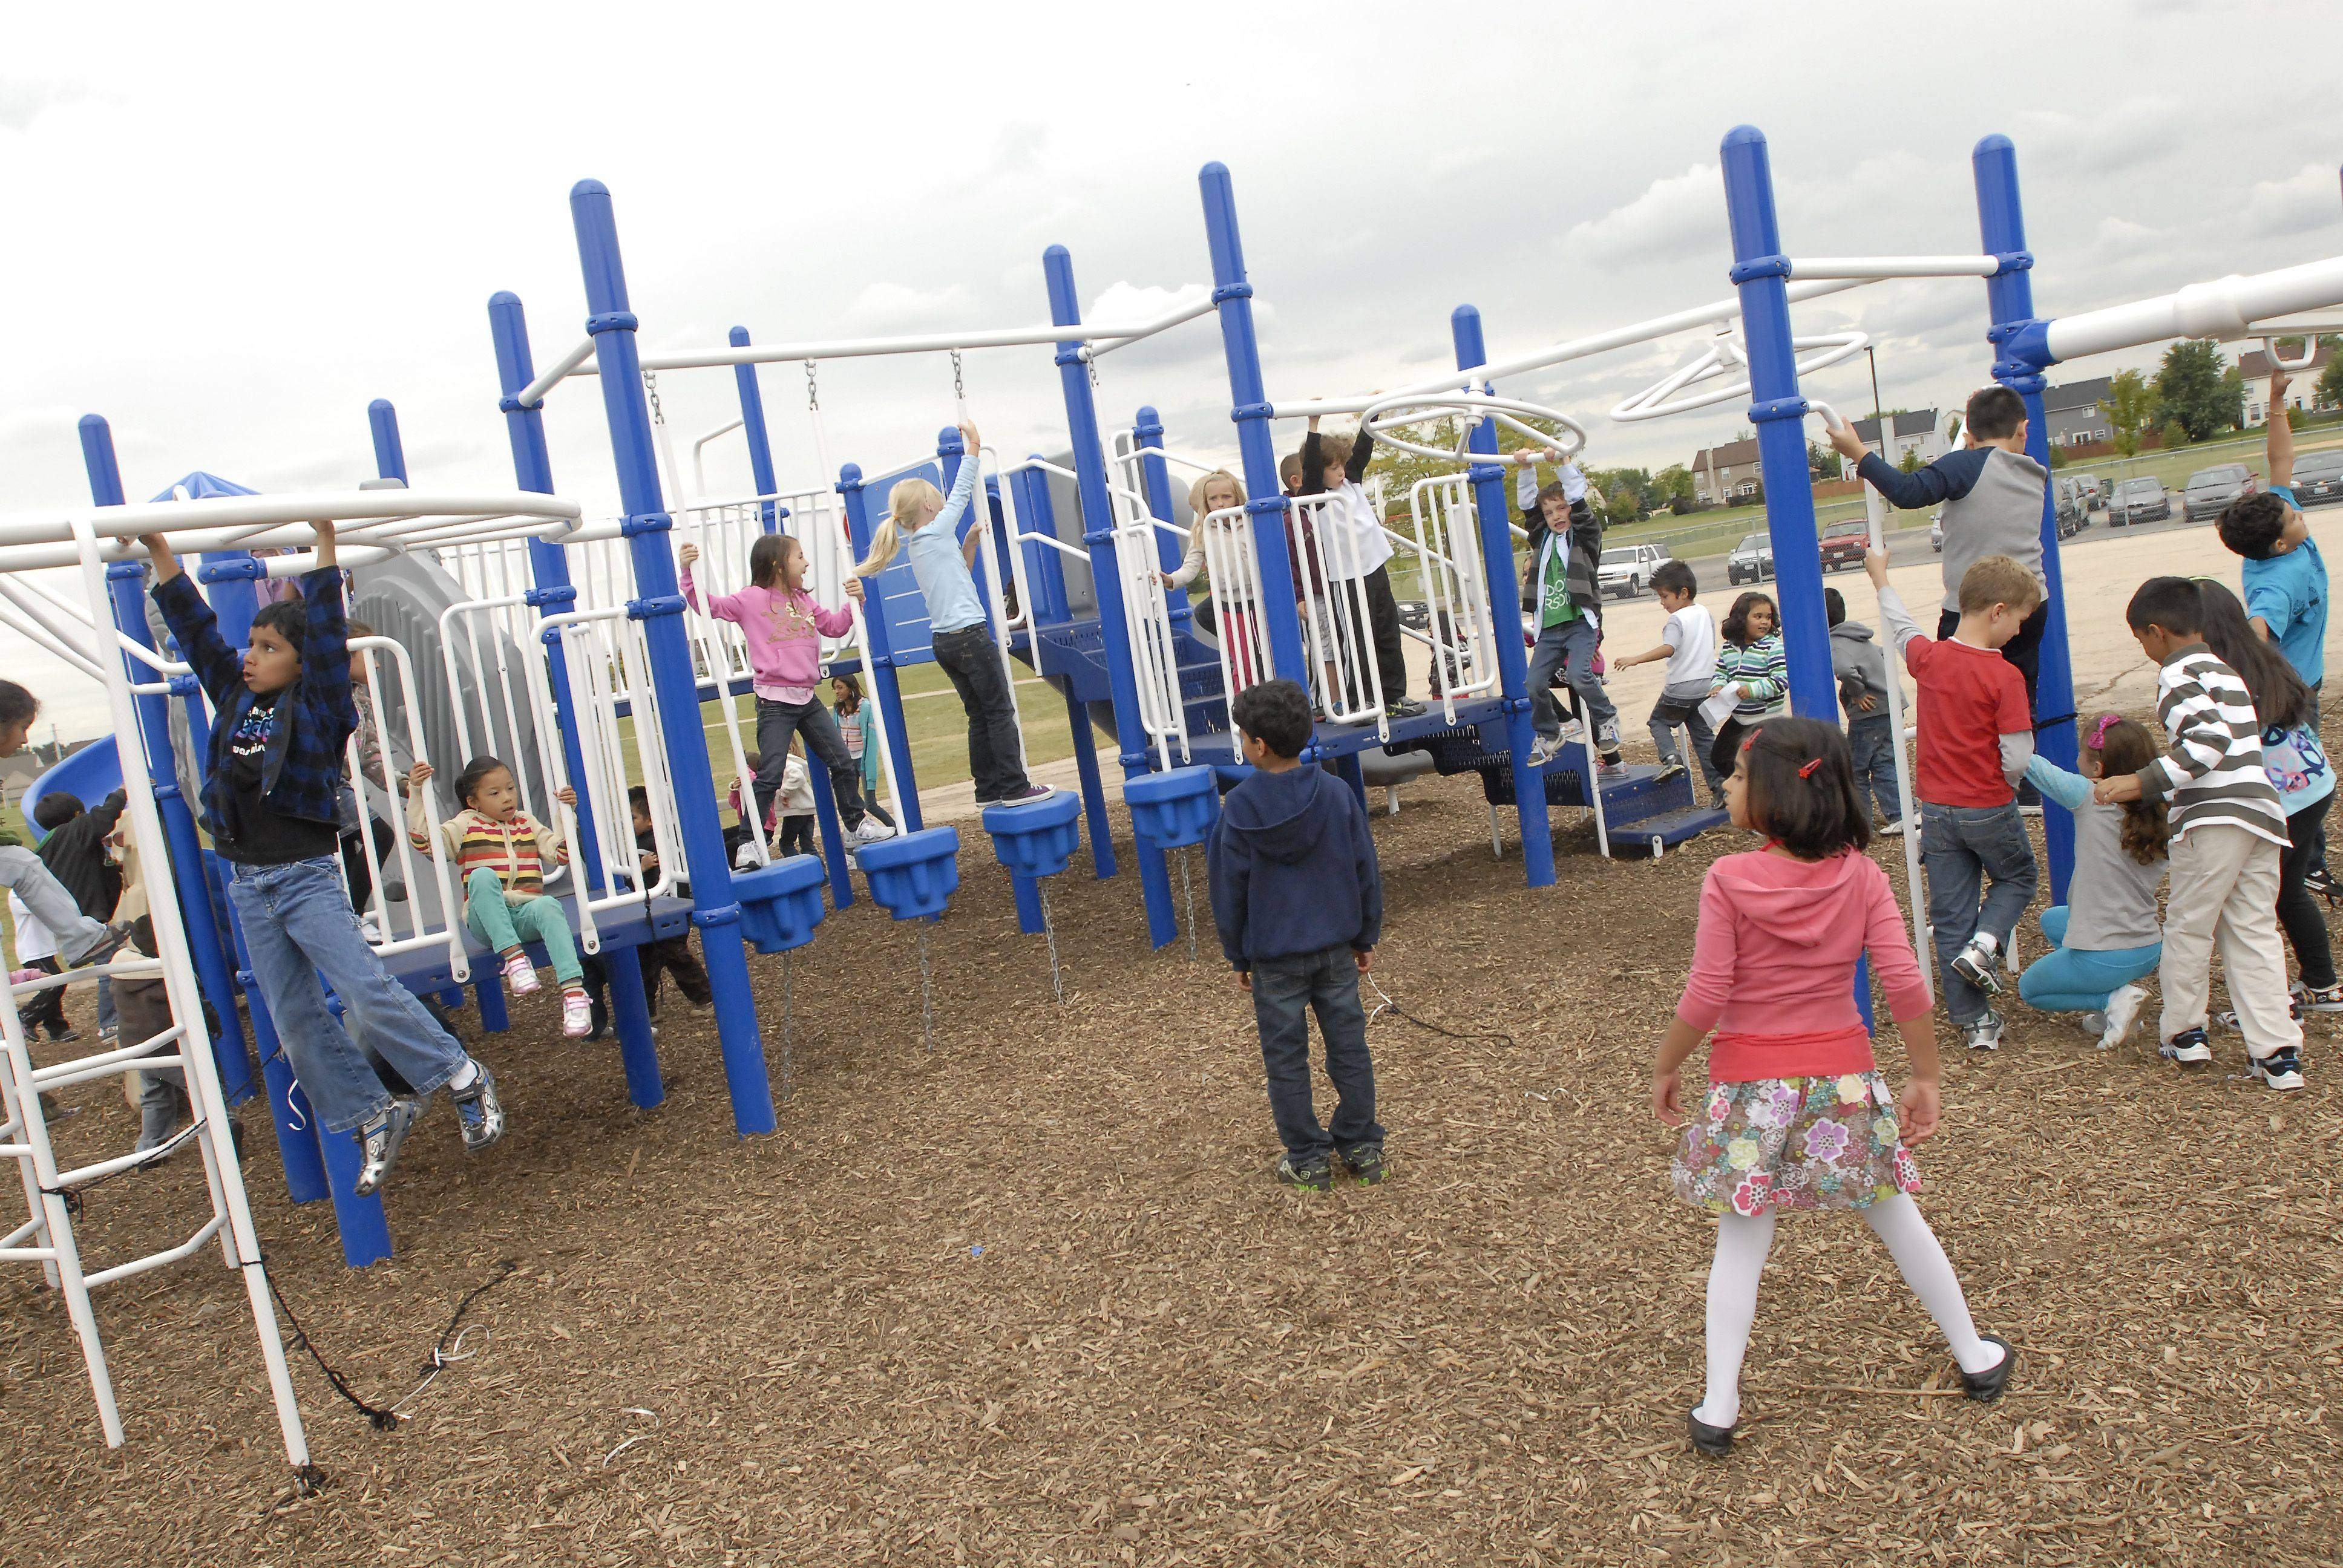 Students check out the new playground equipment at Nature Ridge Elementary School in Bartlett.